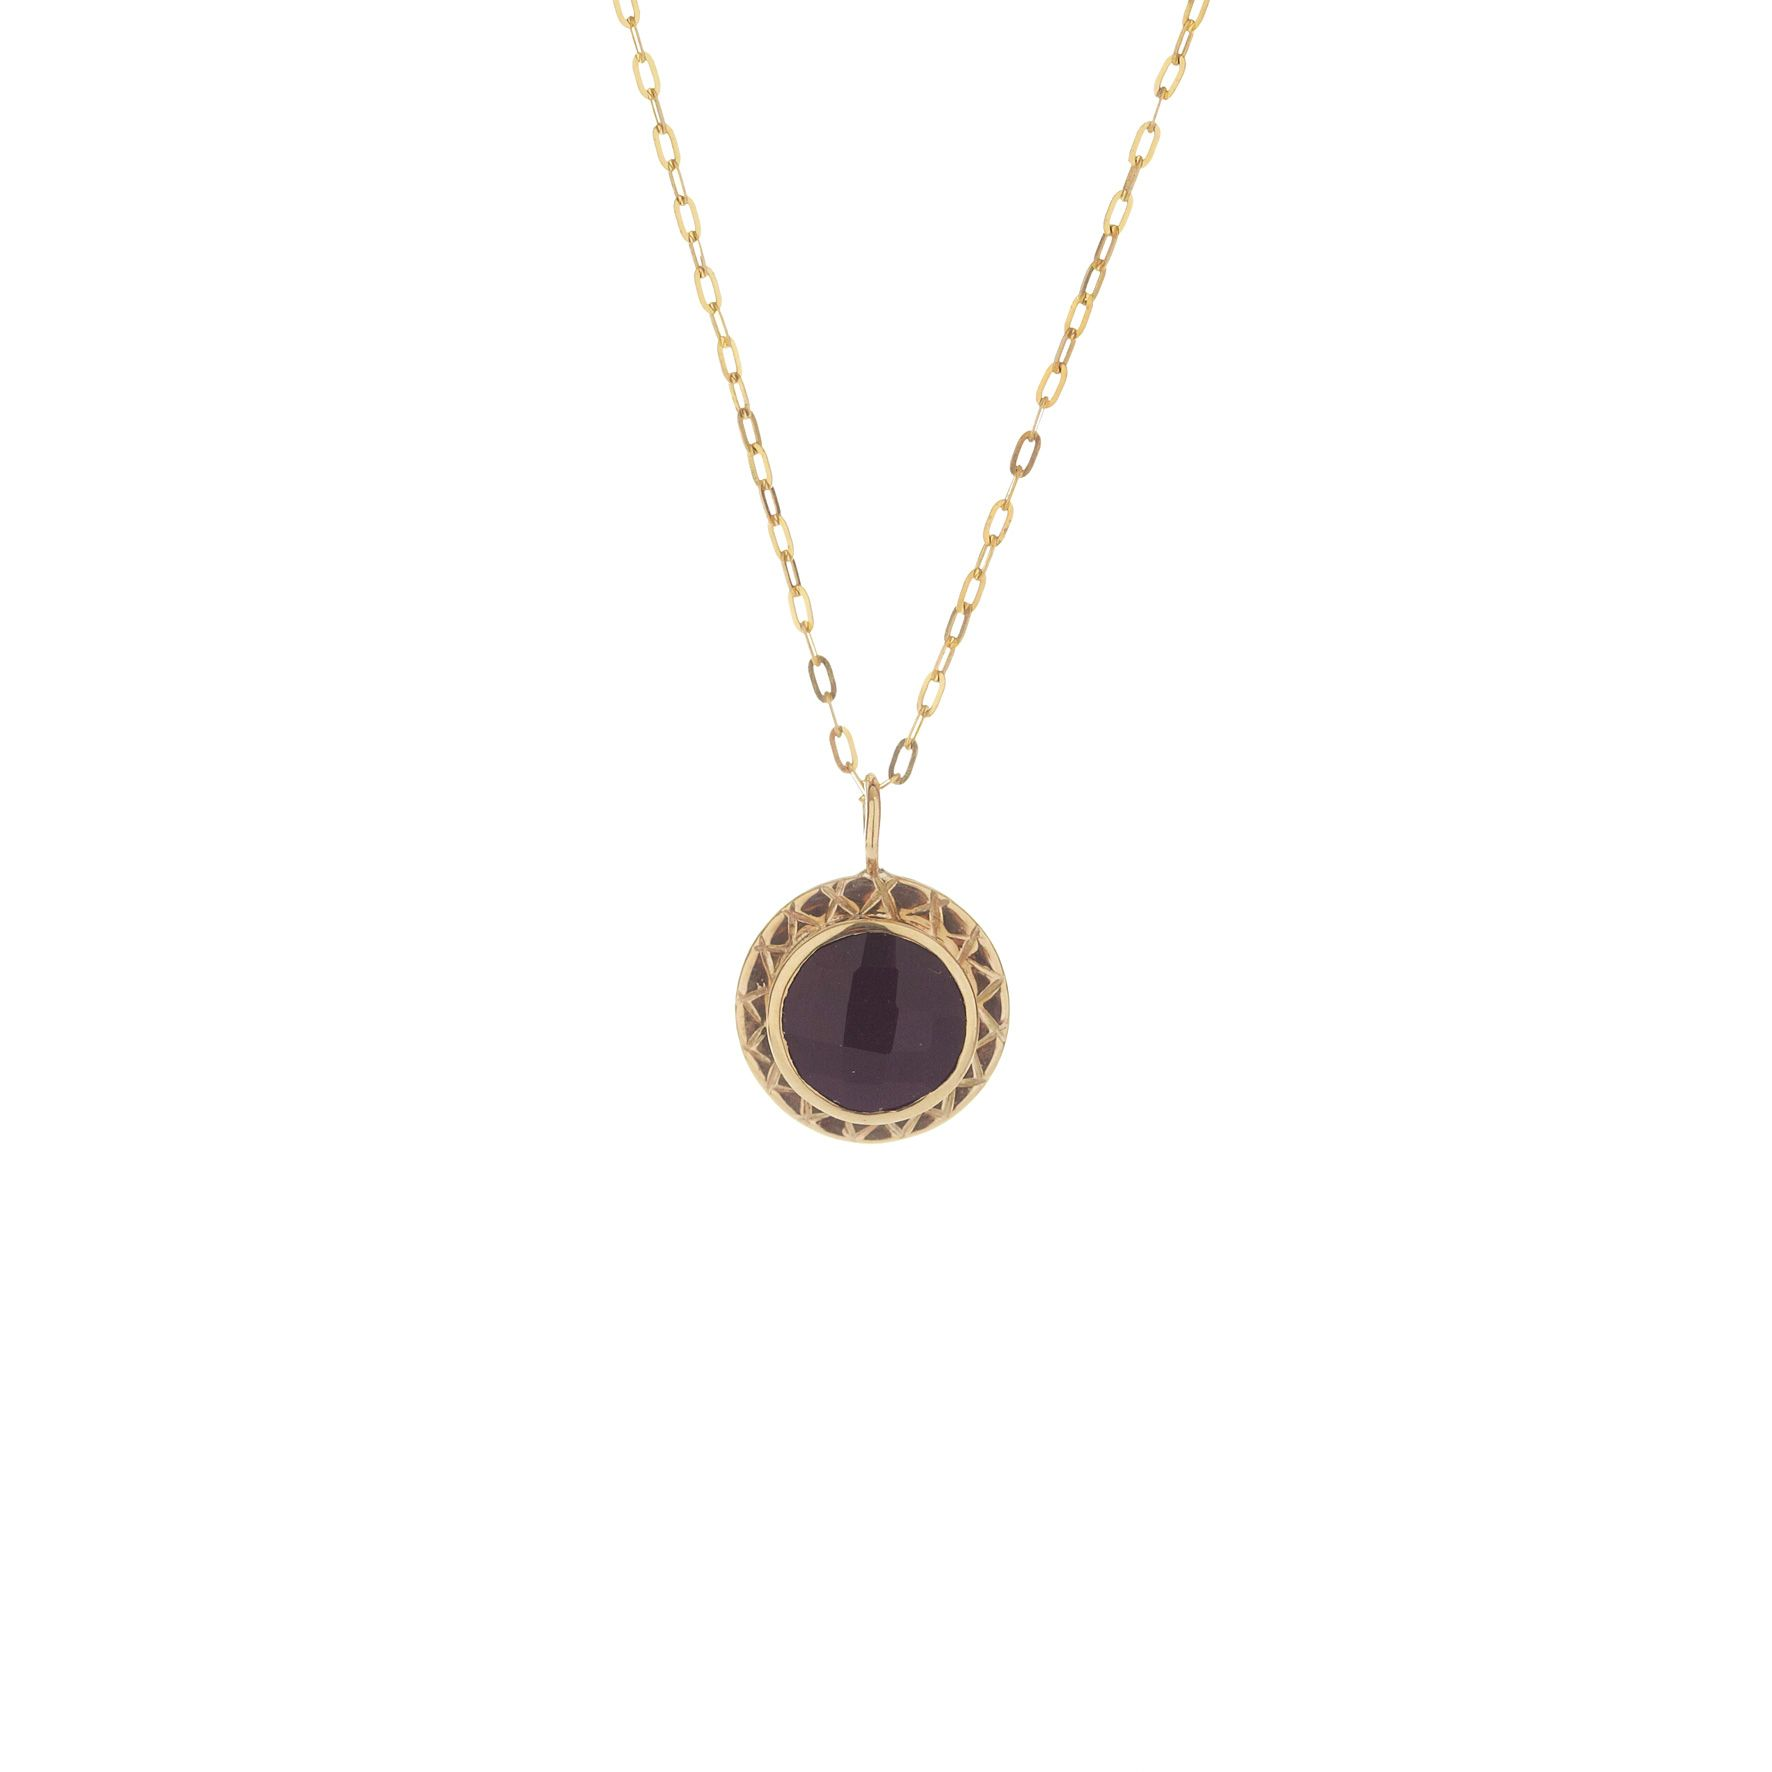 A mm black spinel bezel set in ct yellow gold on a thin gold